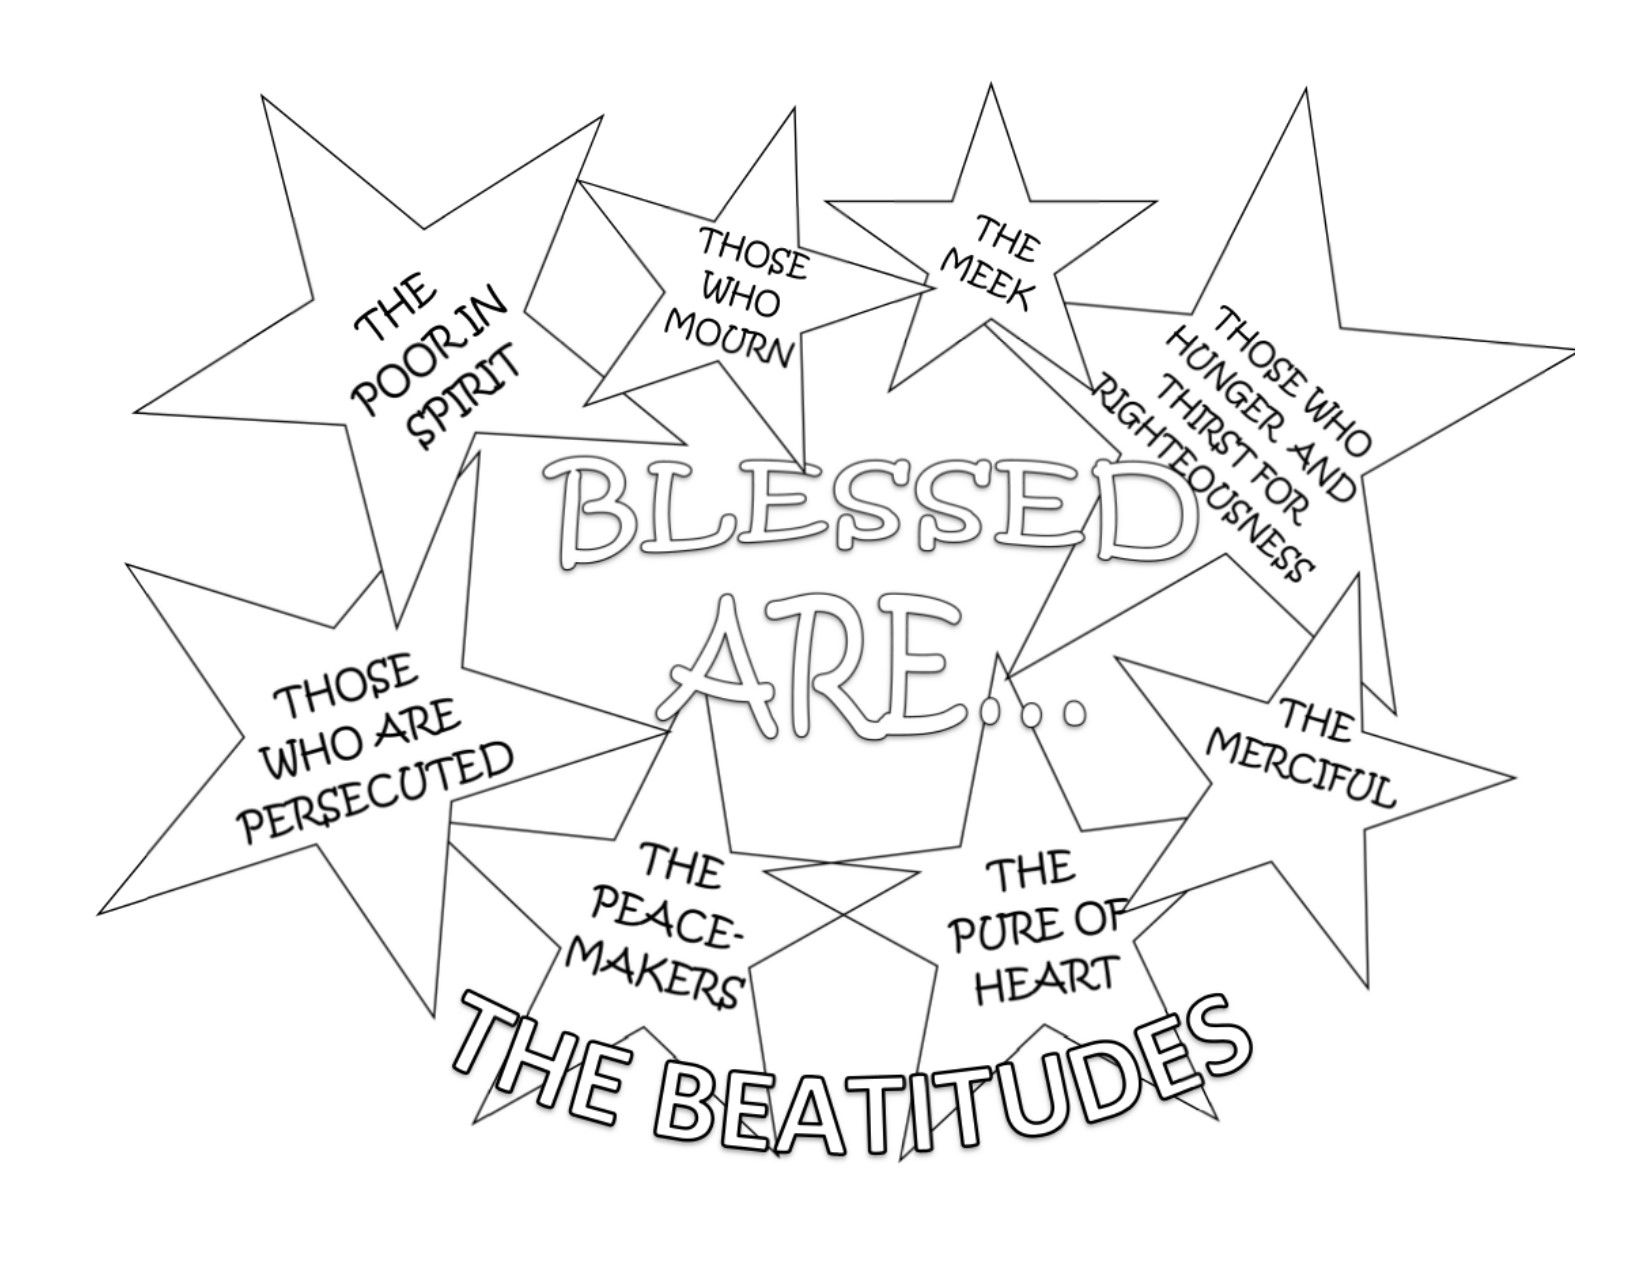 Cute Coloring Sheet For The Beatitudes